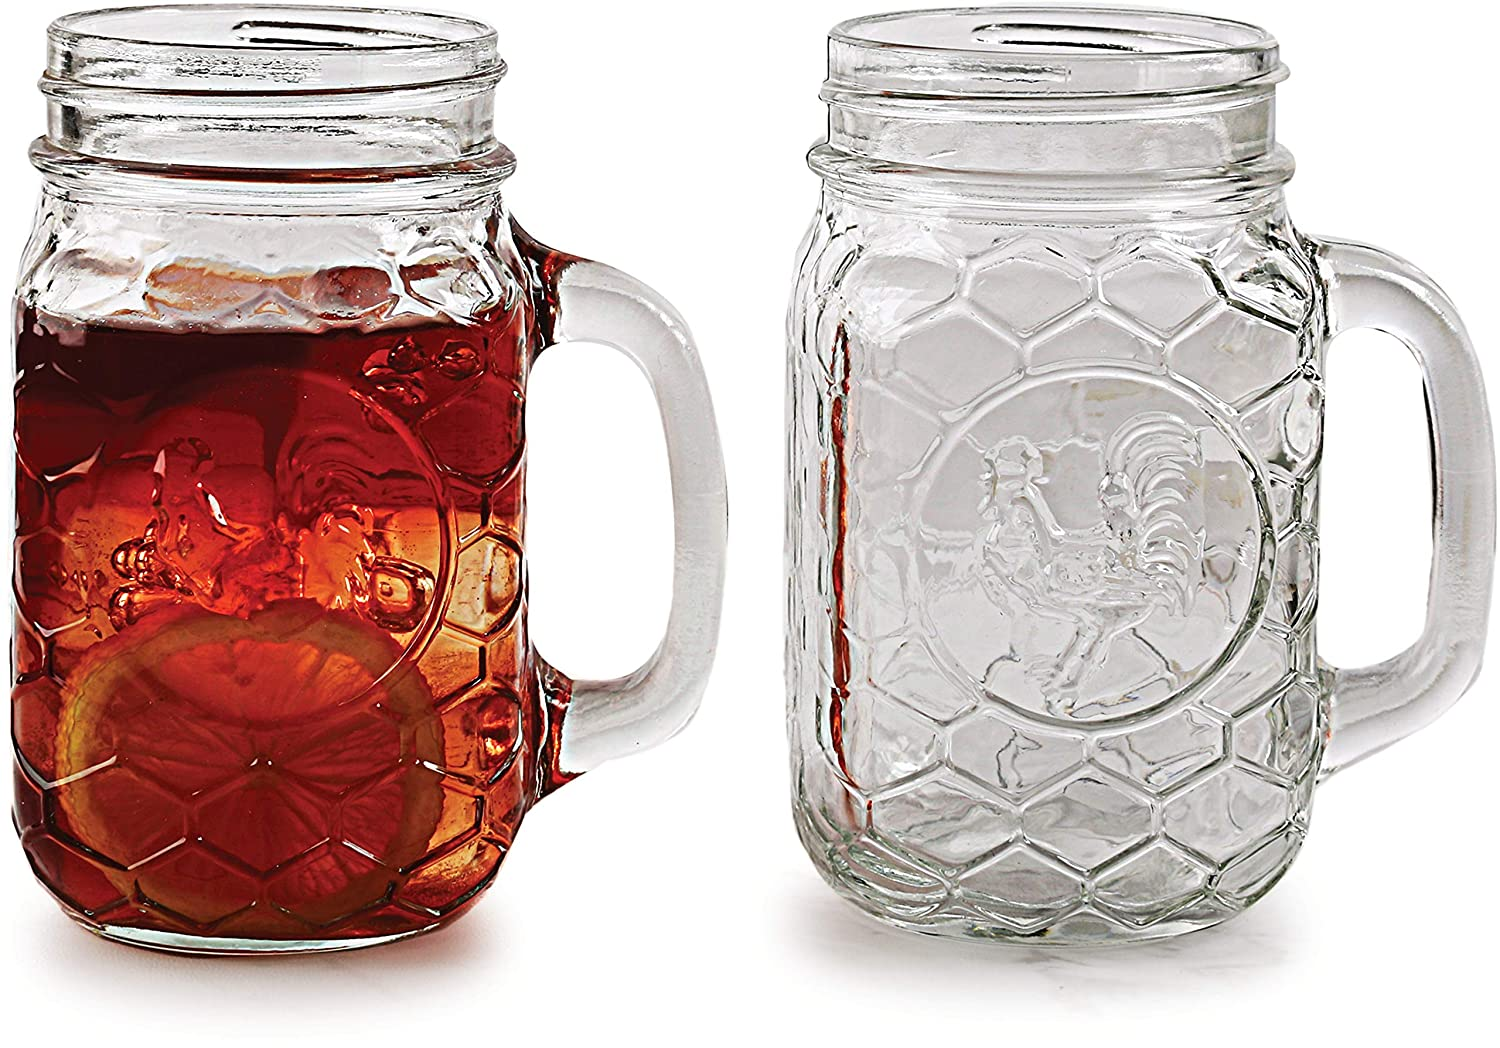 Circleware Rooster Mason Jar Mugs Drinking Glasses, Set of 4, Entertainment Glassware for Water, Juice, Beer Bar Liquor Dining Decor Beverage Cups Gifts, 17.5 oz